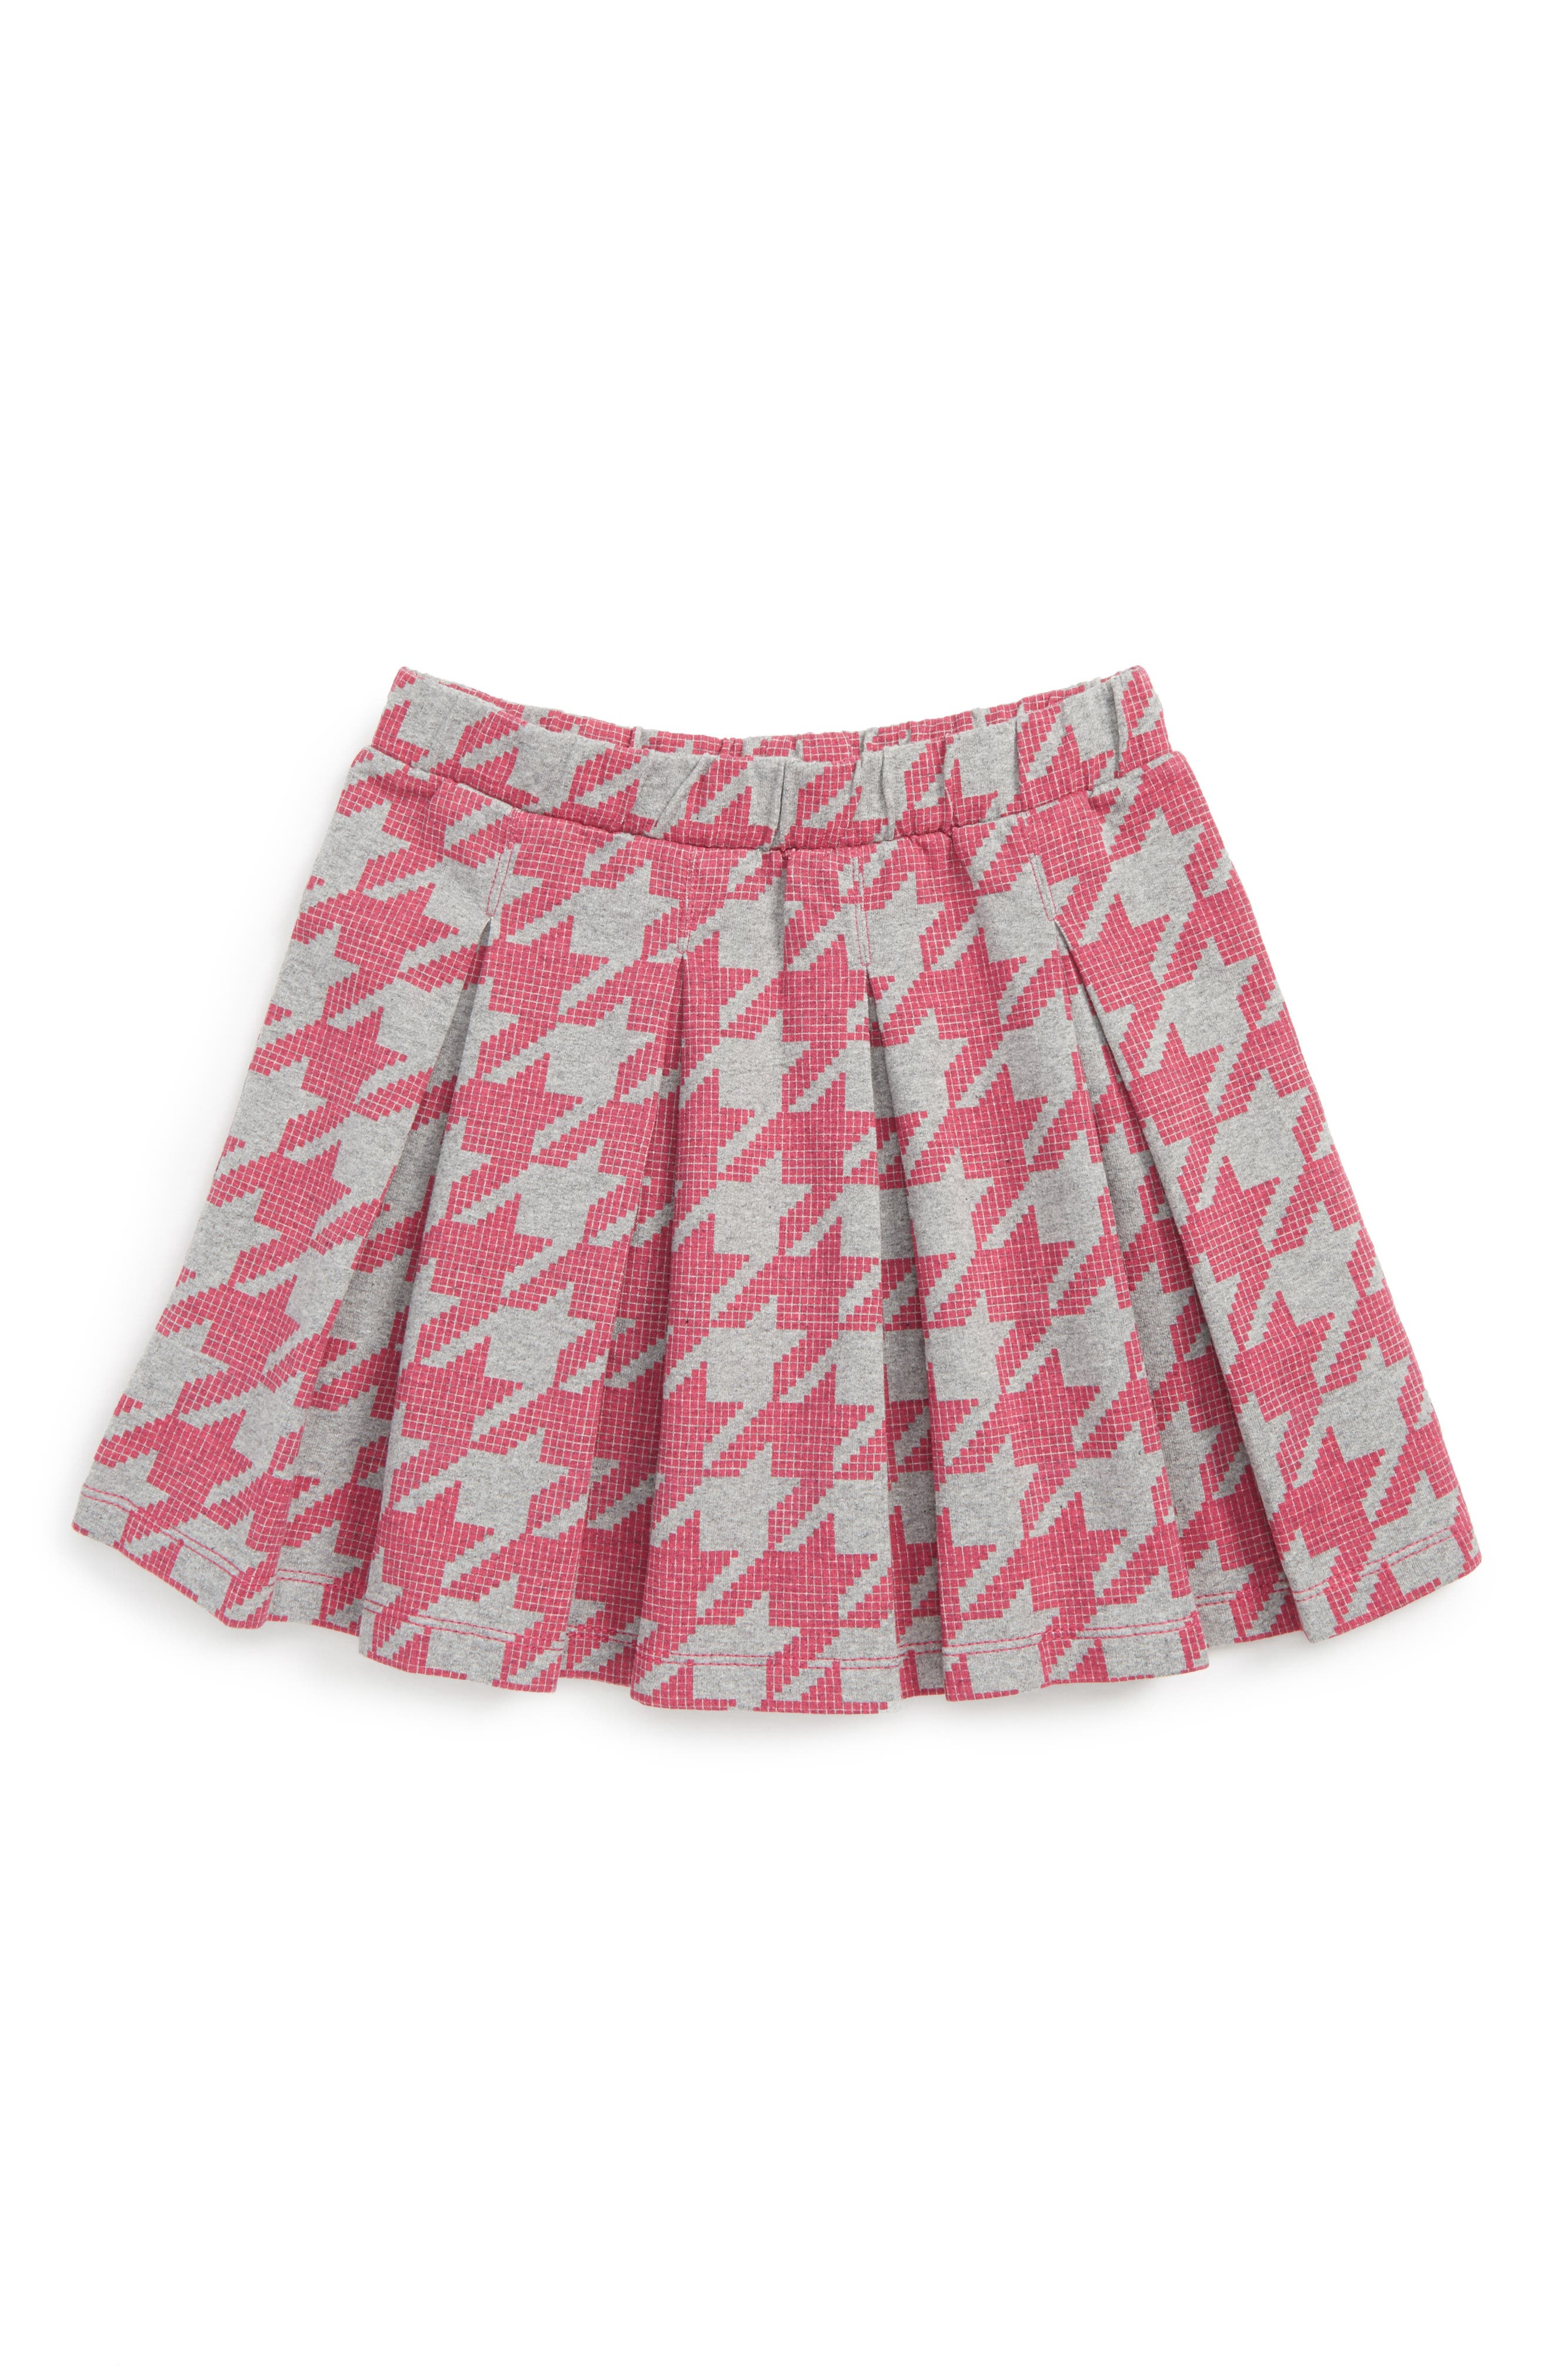 Houndstooth Skirt,                         Main,                         color, Pink